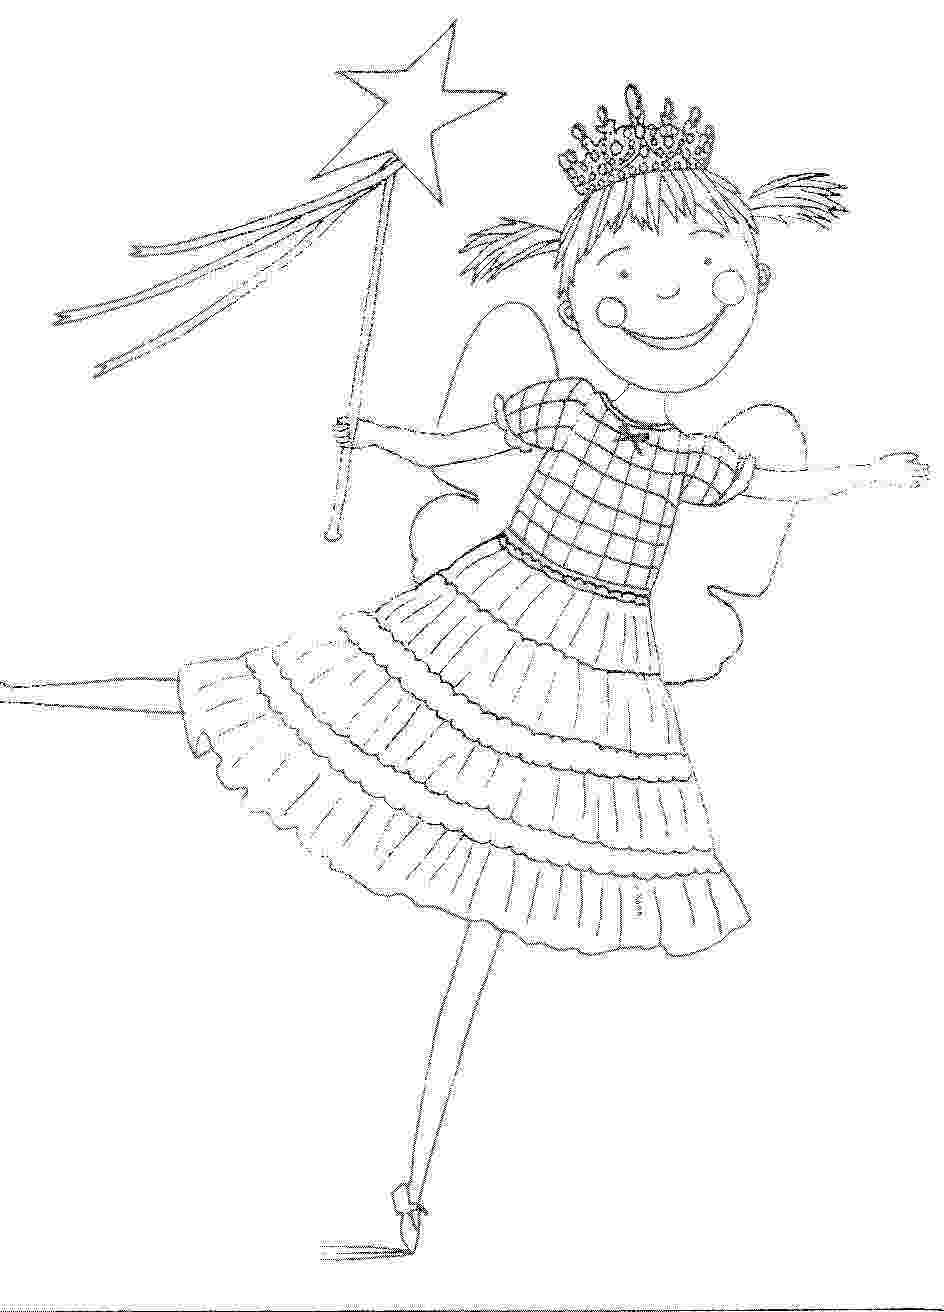 pinkalicious coloring pages free pinkalicious coloring pages to download and print for free coloring pinkalicious free pages